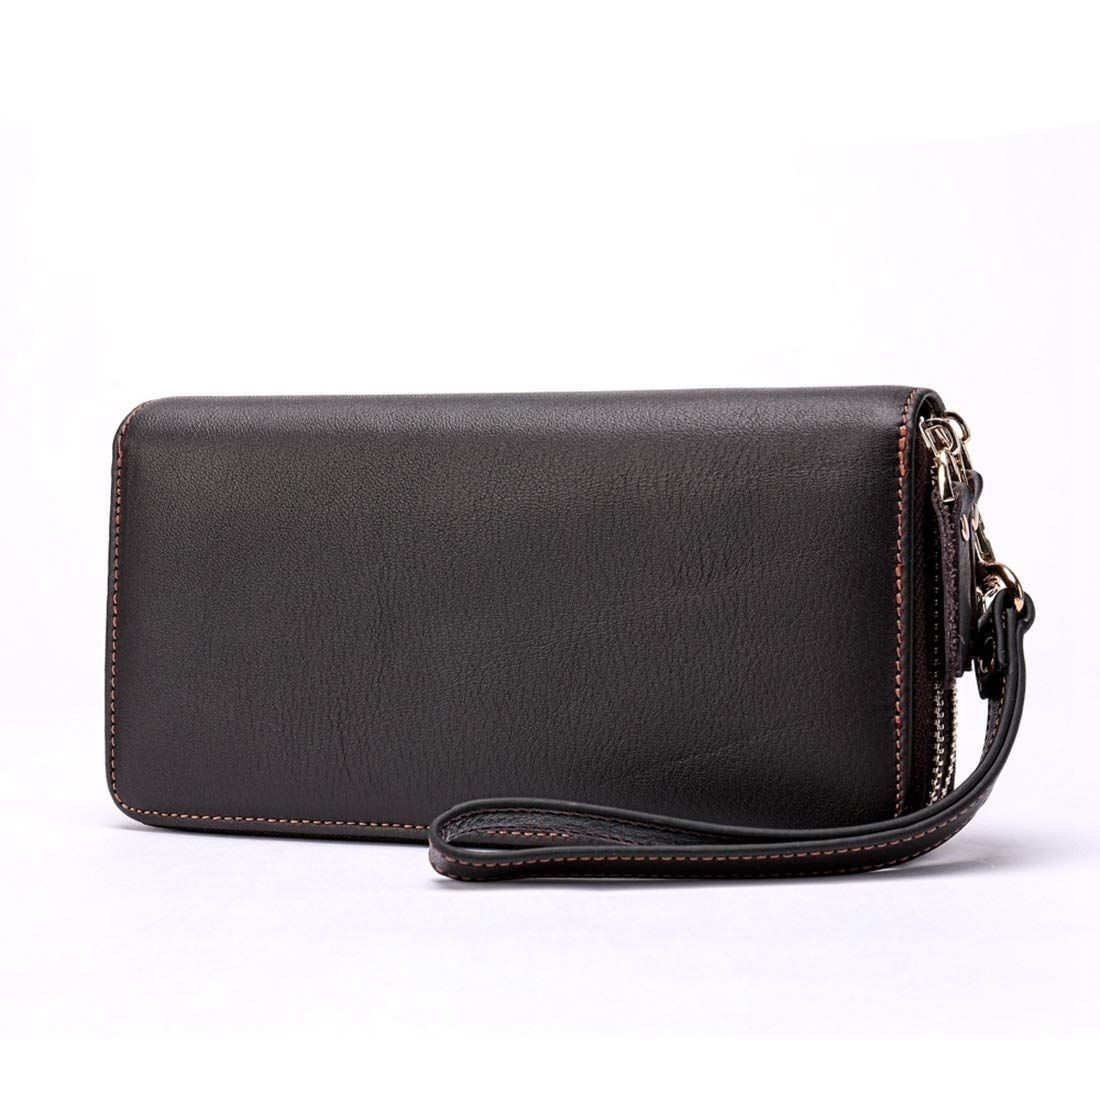 KRPENRIO Business Double Mens Wallet Long Wallet First Layer Leather Large Capacity Clutch Mens Hand Bag Color : Coffee Color